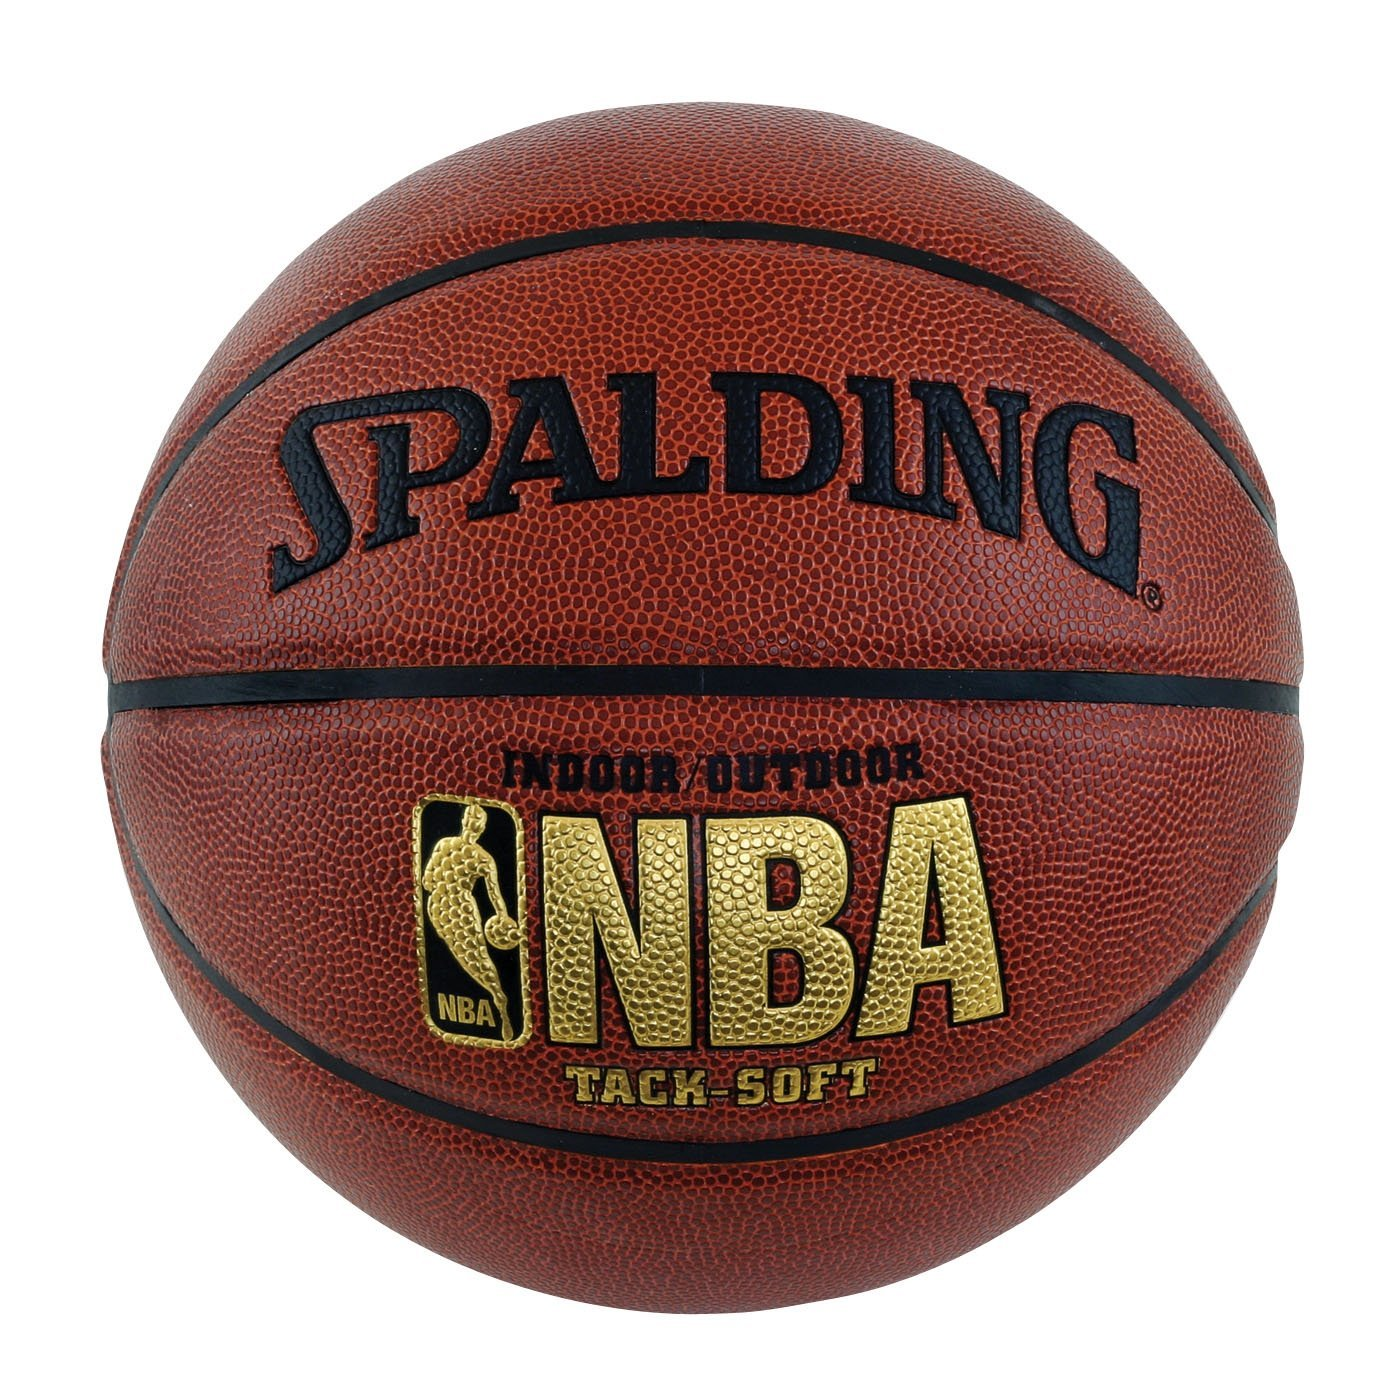 Spalding NBA tach soft basketball